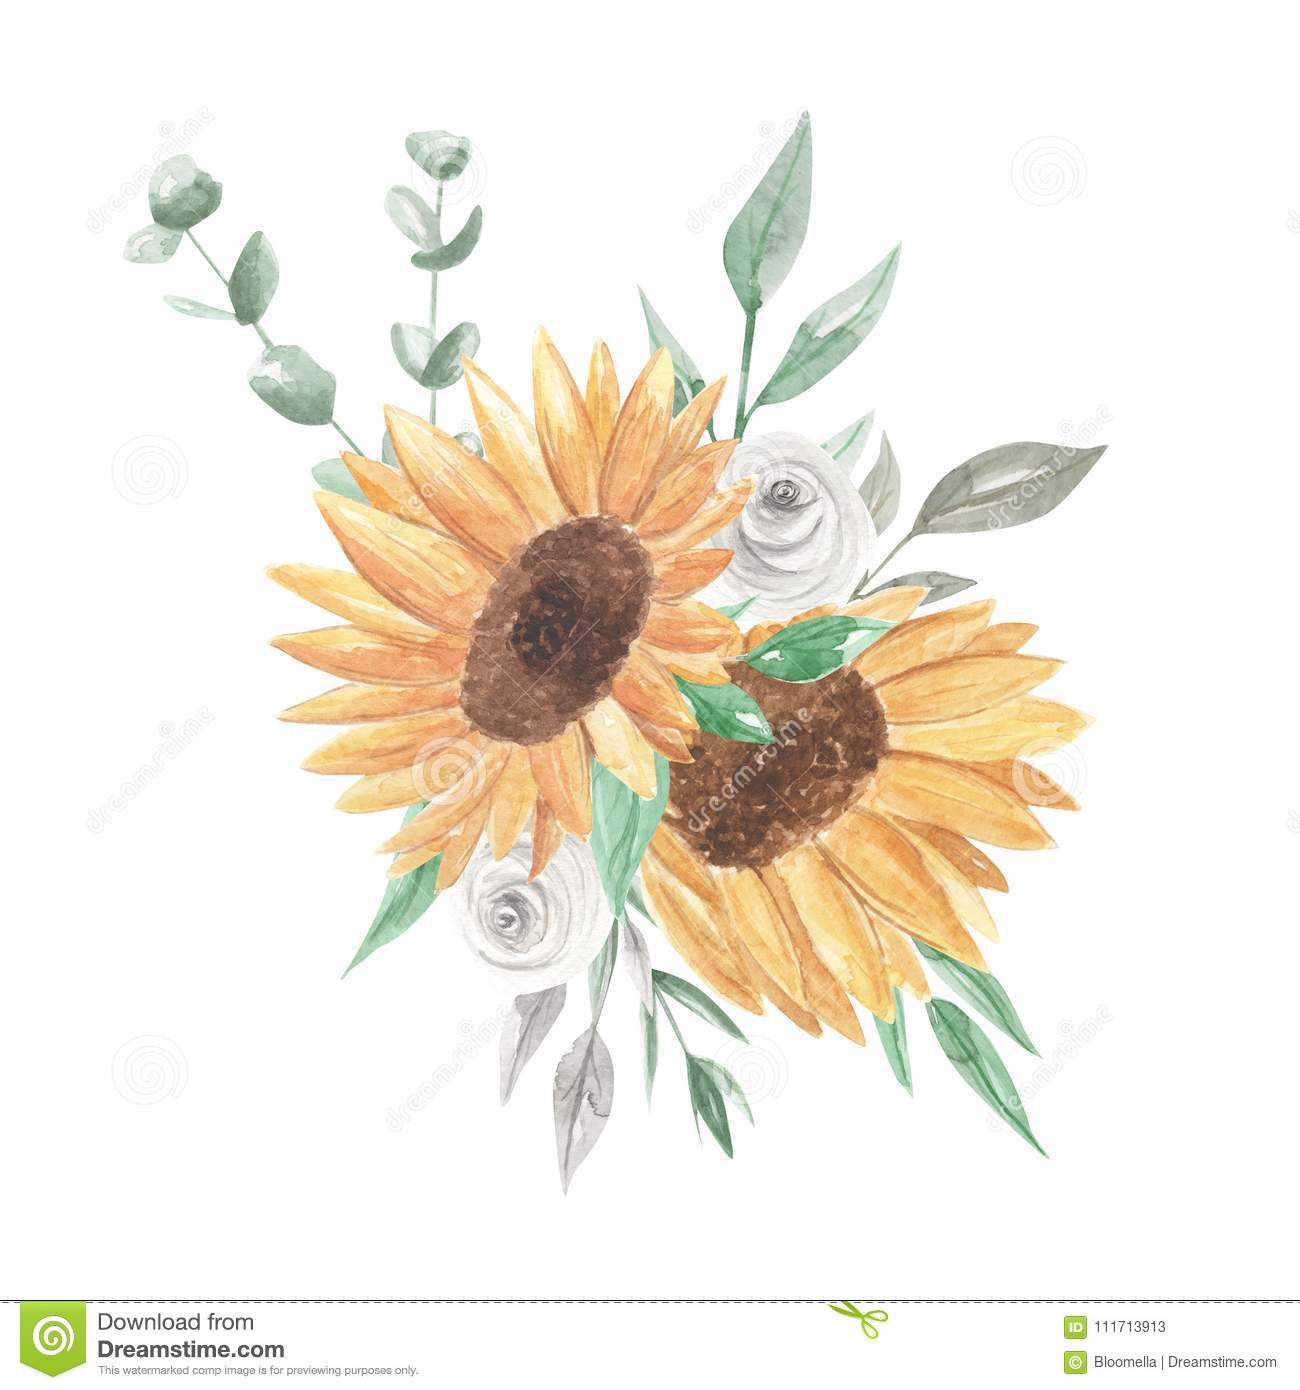 Sunflowers Watercolor Bouquets Pretty Clipart Flowers White Roses Stock Illustration Illustration Of Eucalyptus Bouquet 111713913